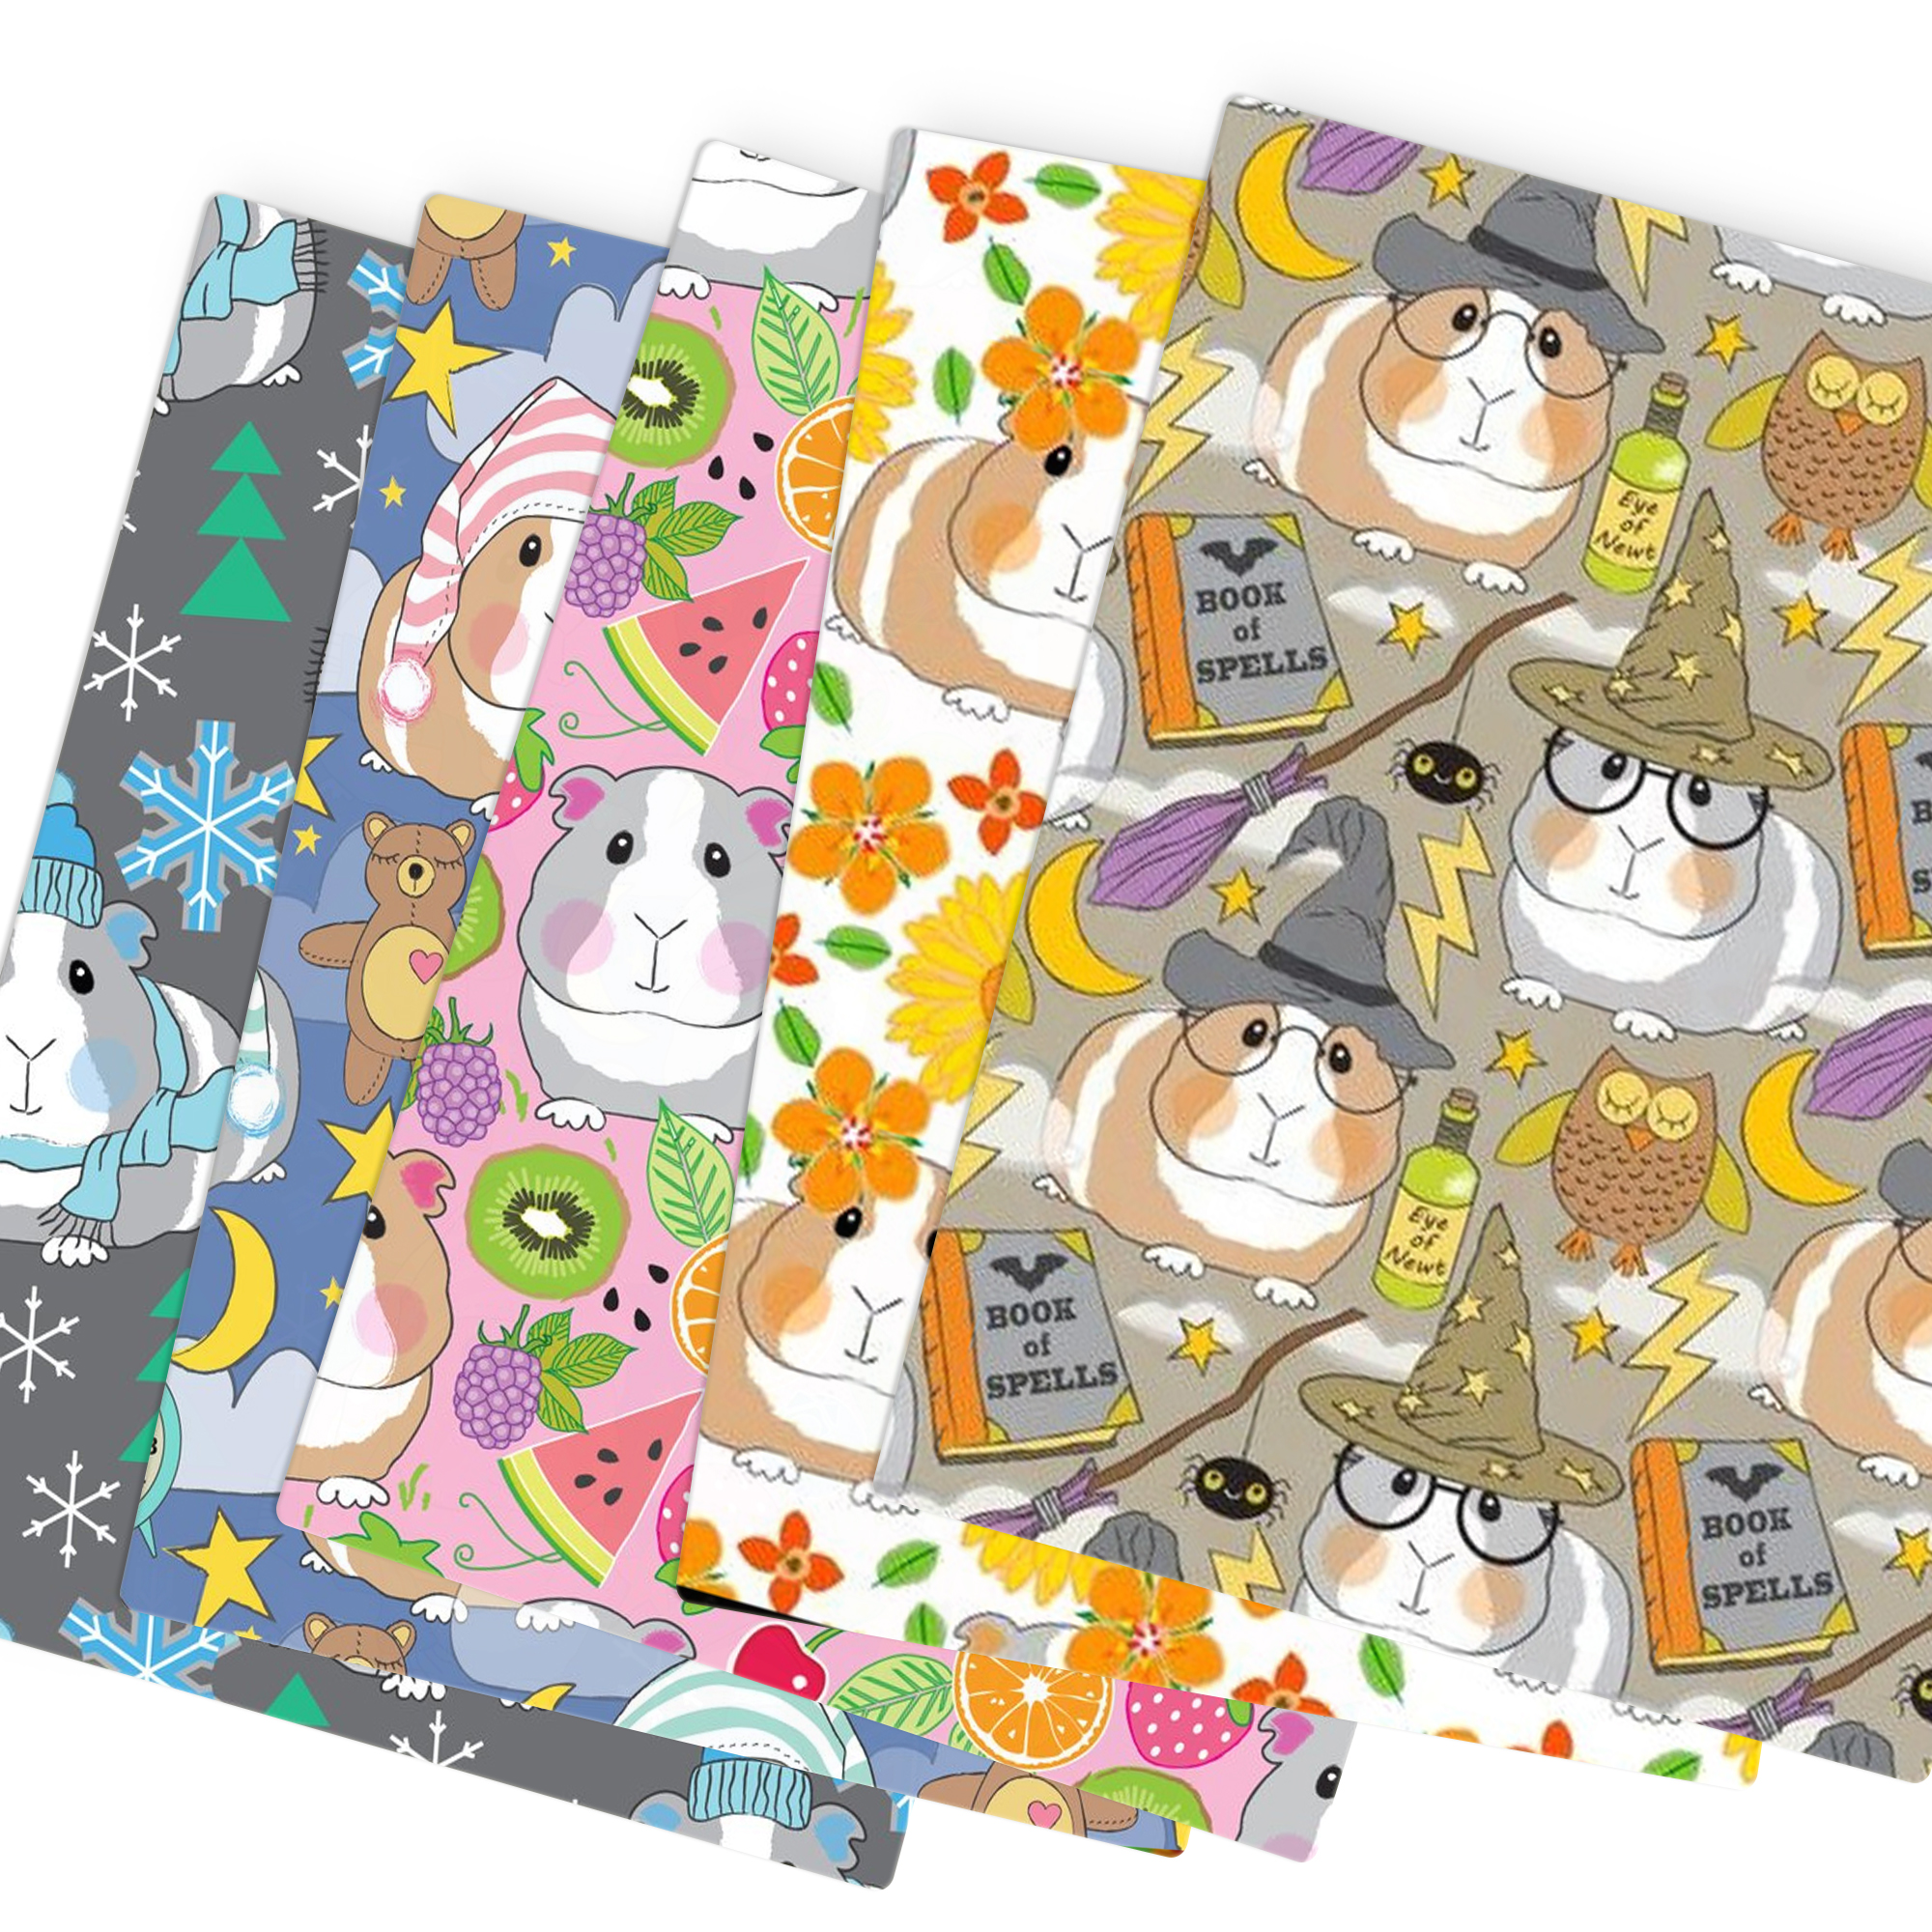 Patchwork Guinea Pig Polyester Cotton Fabric for Tissue Kids Sewing Quilting Fabrics Needlework Material DIY,c13762